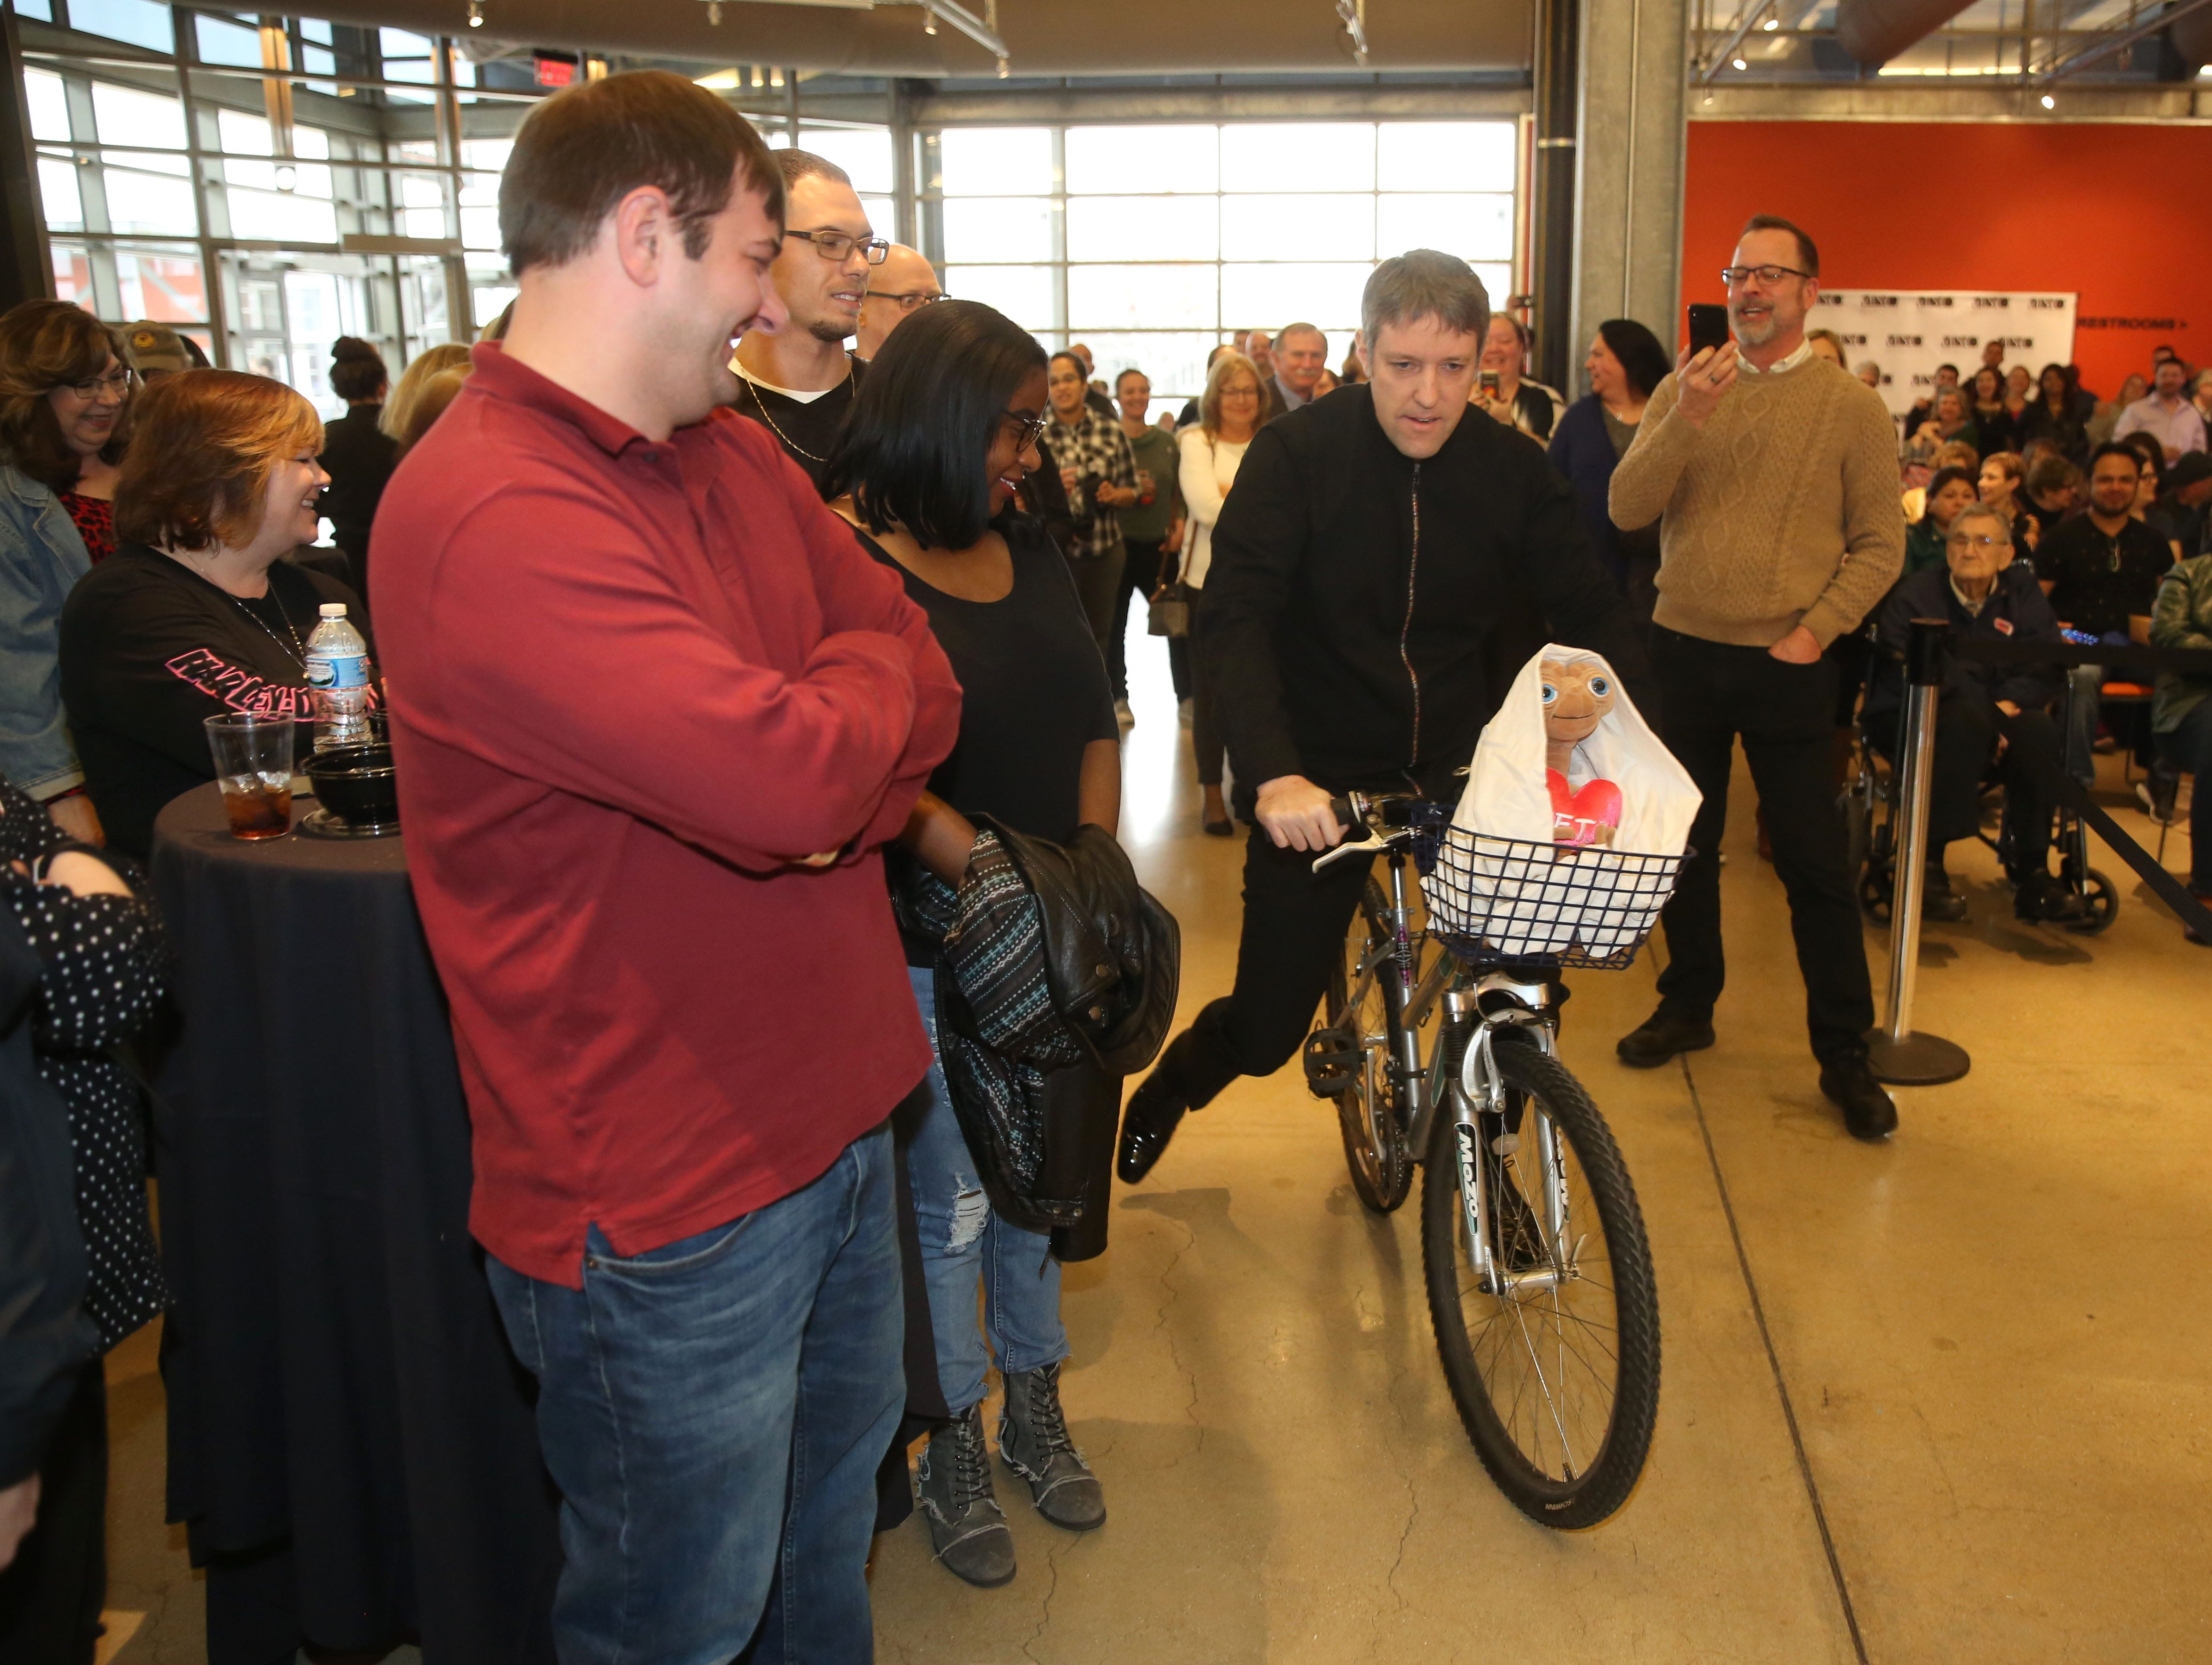 """After starting the musicians playing music from the movie """"ET,"""" associate conductor Yaniv Dinur re-enacts his trip to the Milwaukee Symphony's Secret Symphony performance Sunday at the Harley-Davidson Museum."""